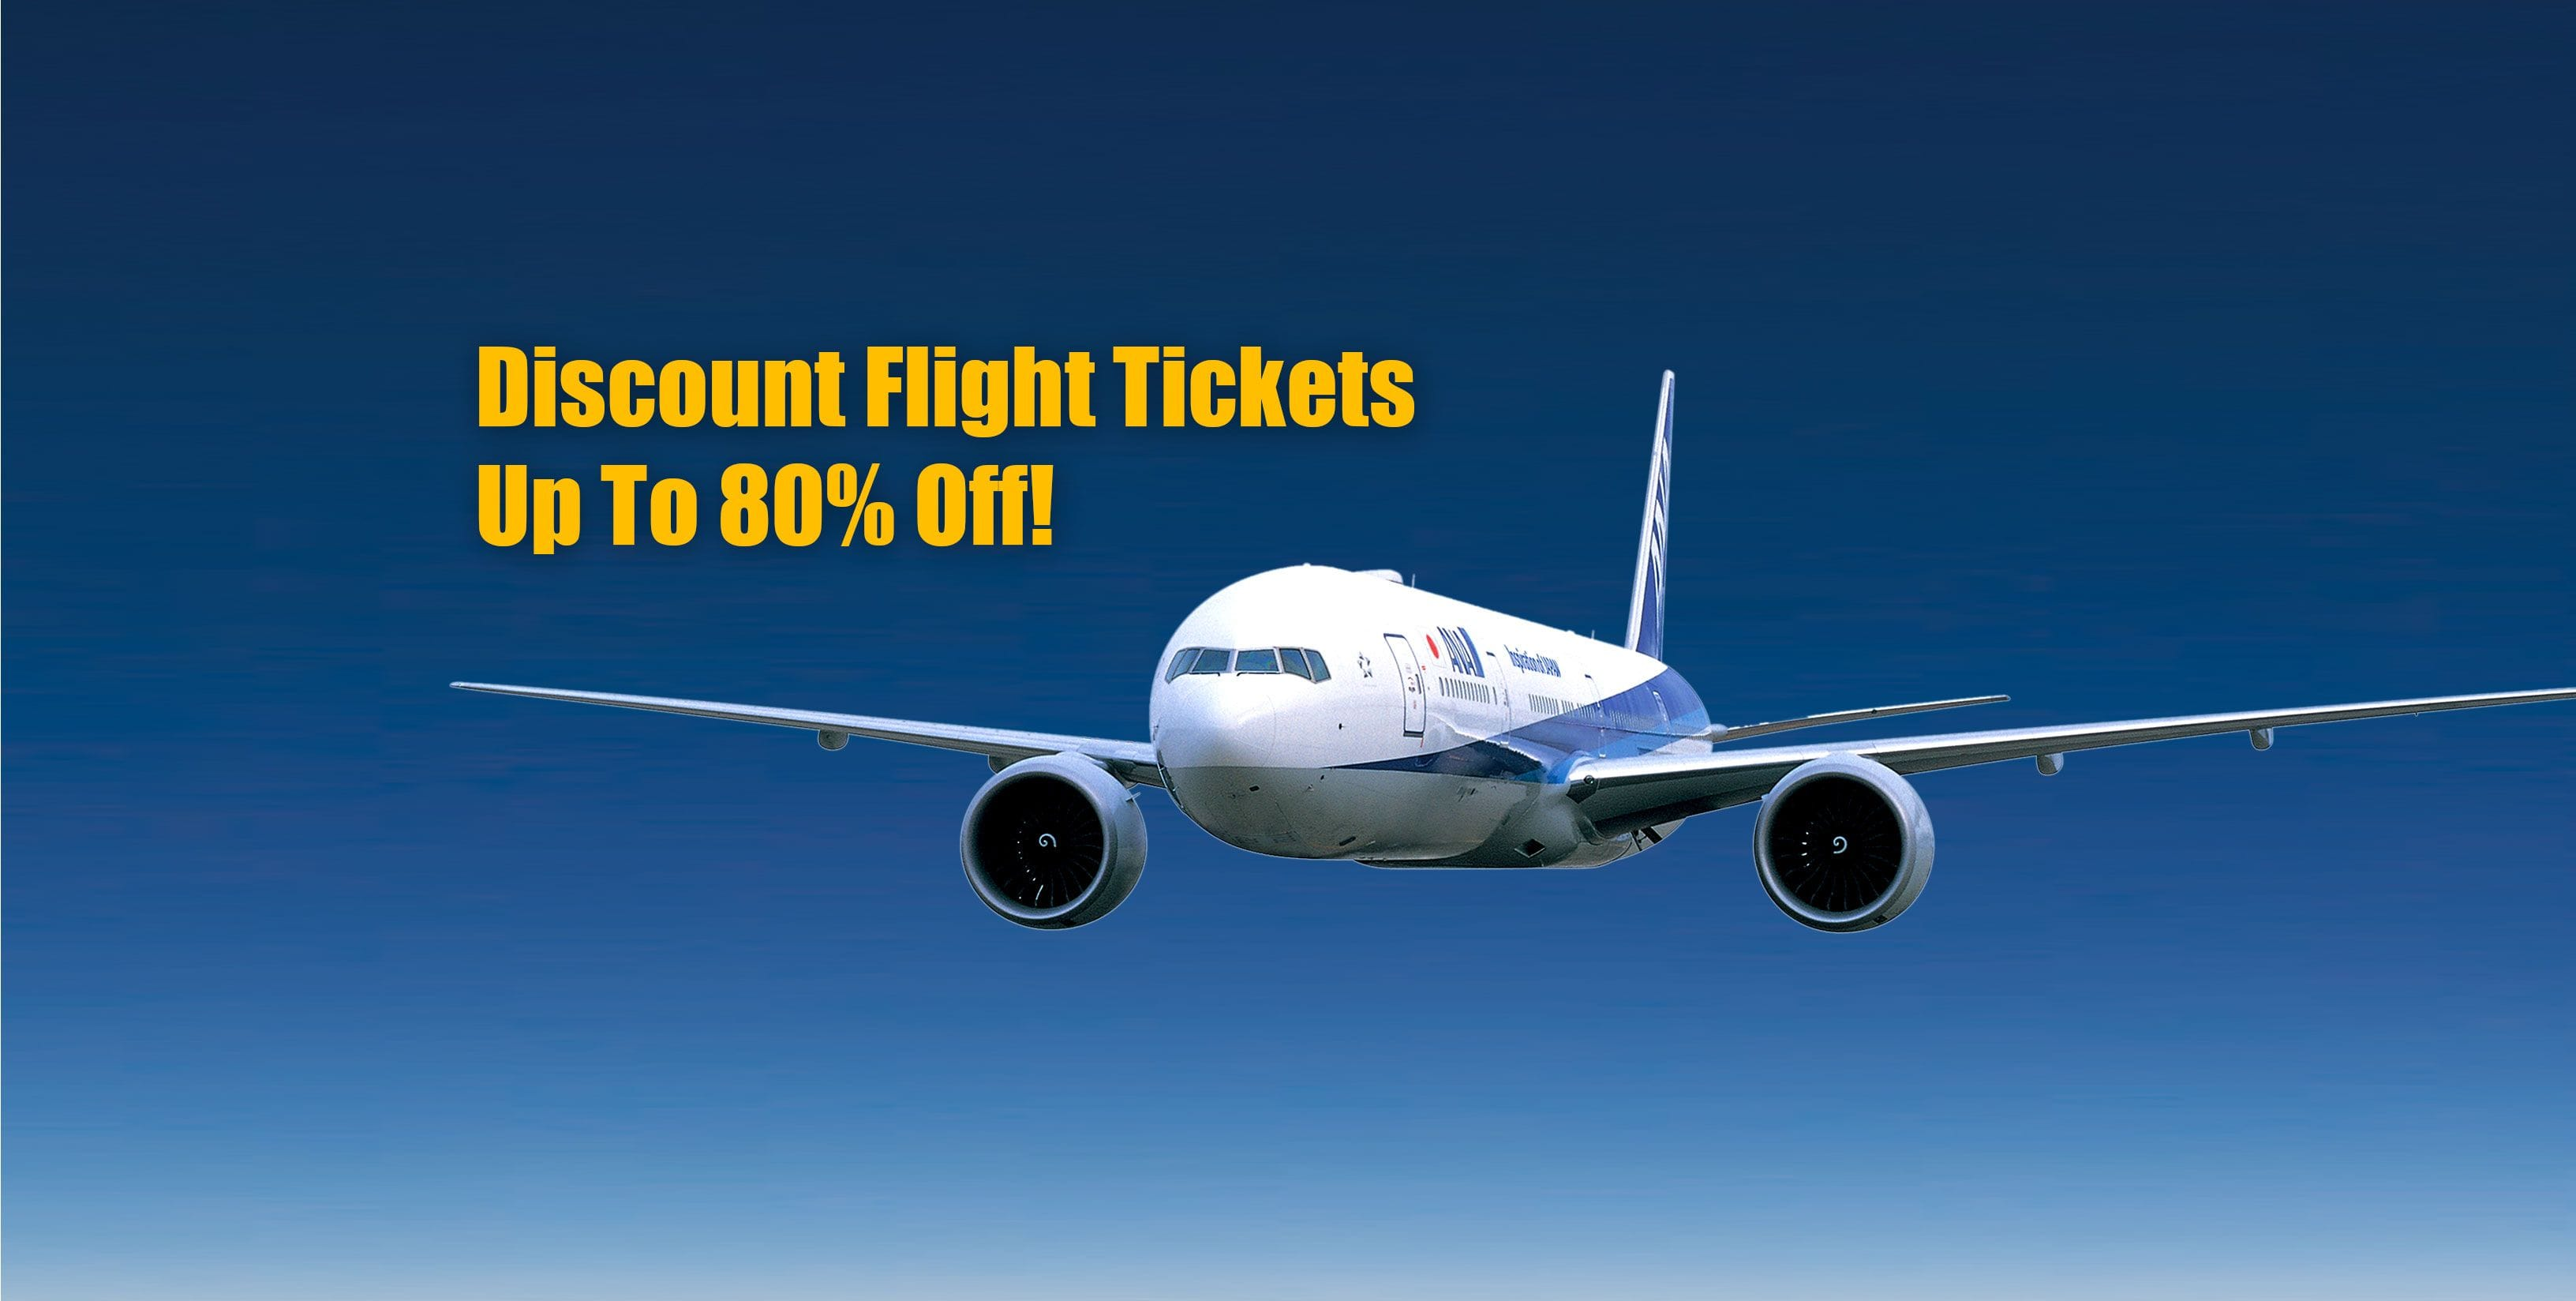 Up To 80% Off! ANA's Domestic Travel Tickets Are A Bargain!